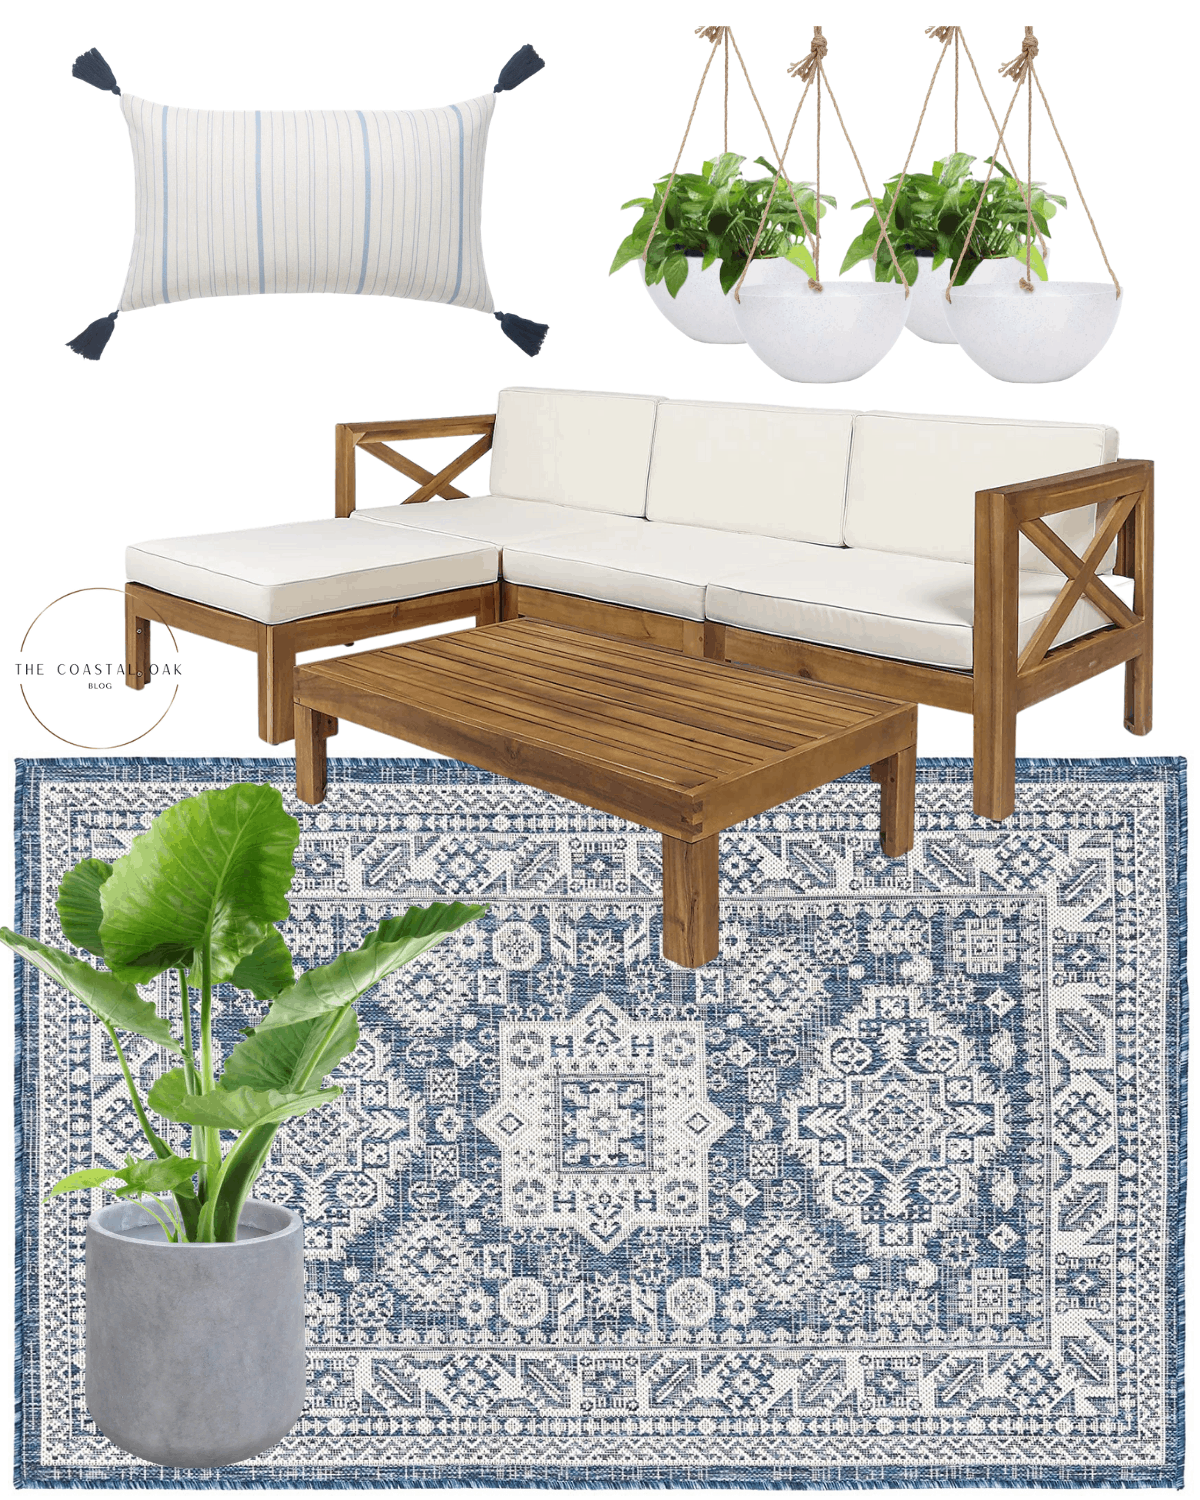 Outdoor sectional with home decor ideas.